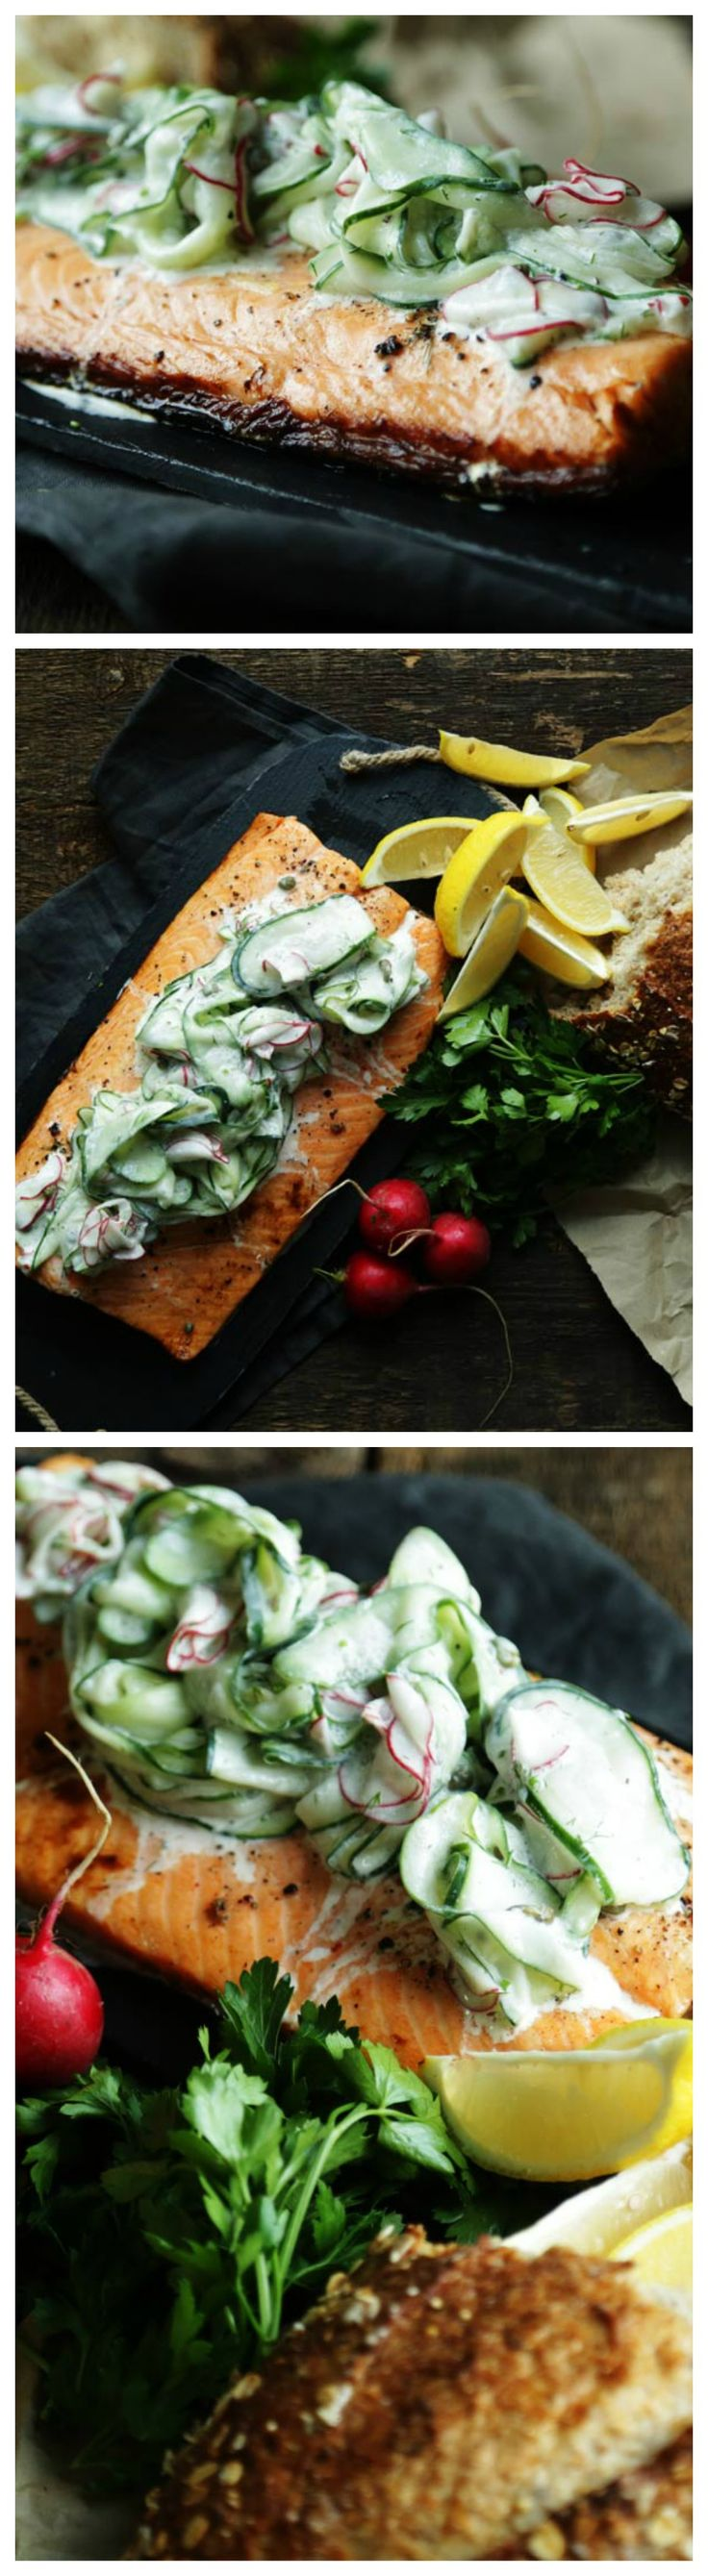 Roasted Salmon Cooked in Foil on the Grill and a Cucumber Dill Salad